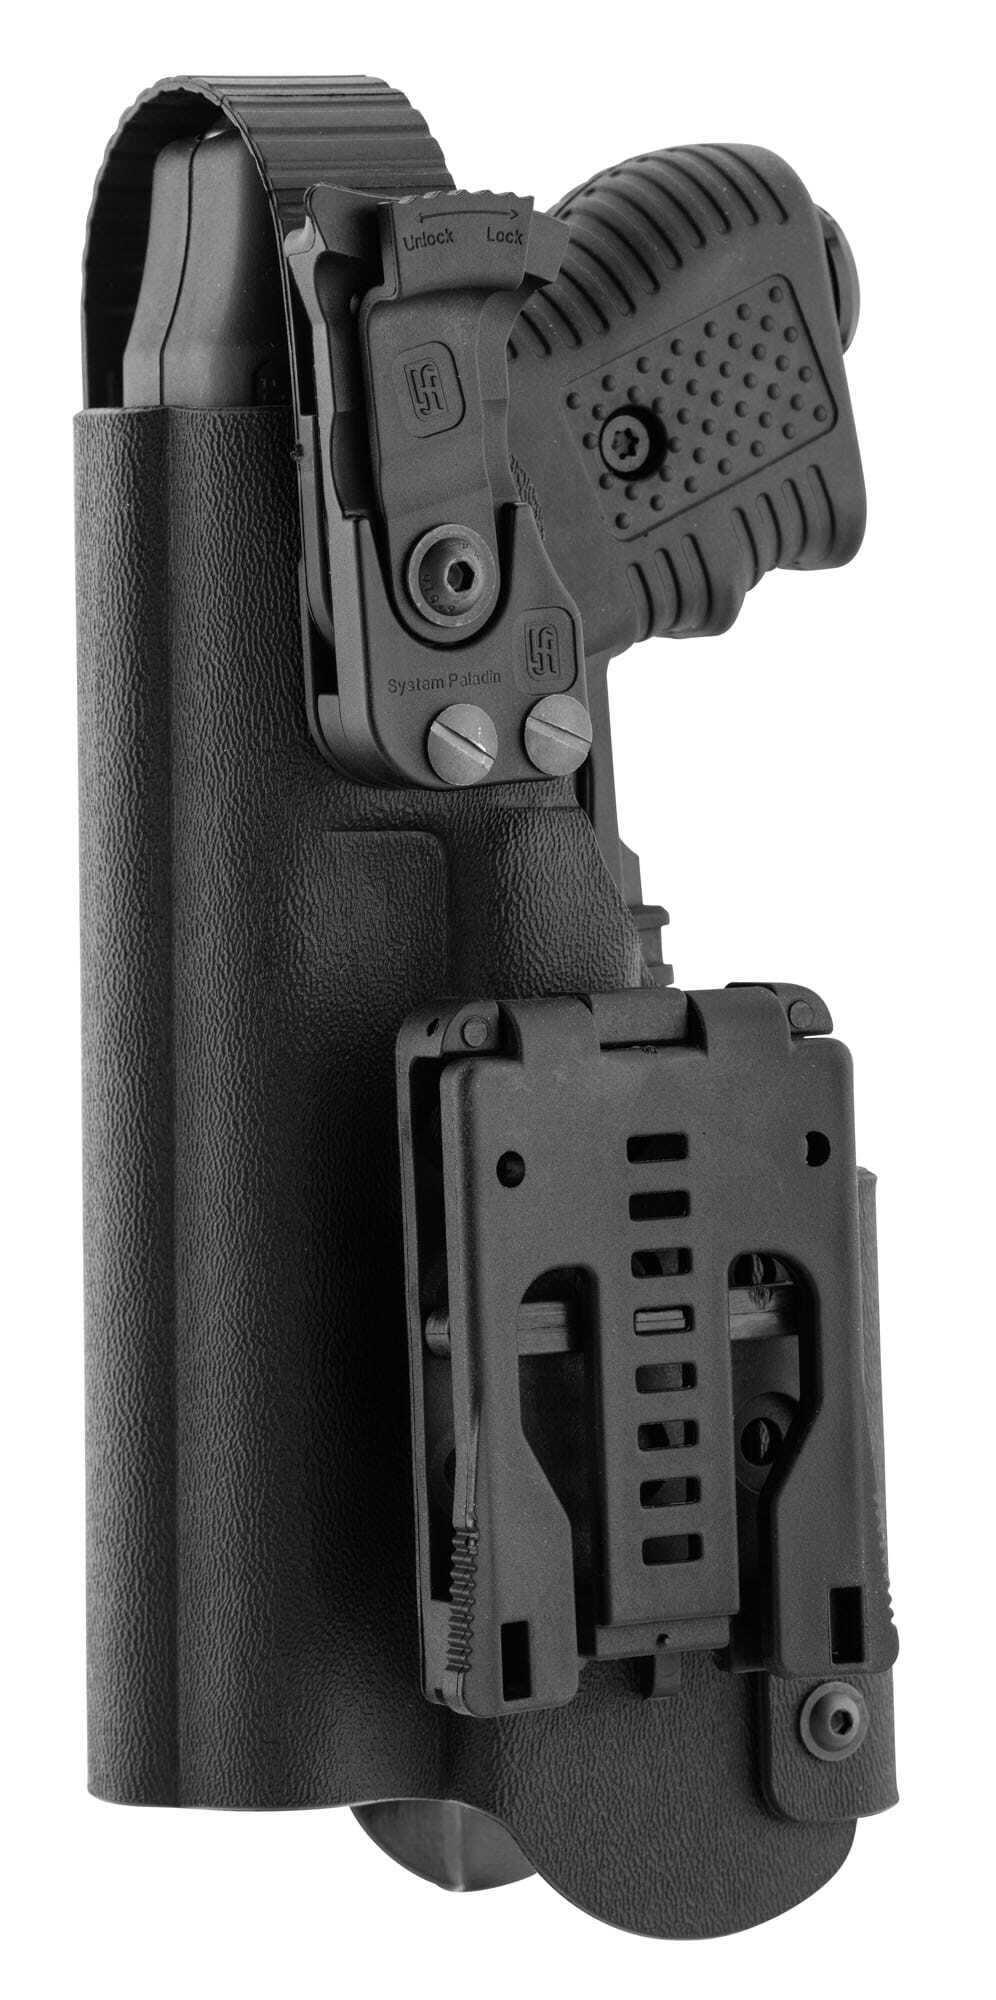 JPX390-1-Holster pour JPX - Kydex Paladin II avec lampe tactique - JPX400